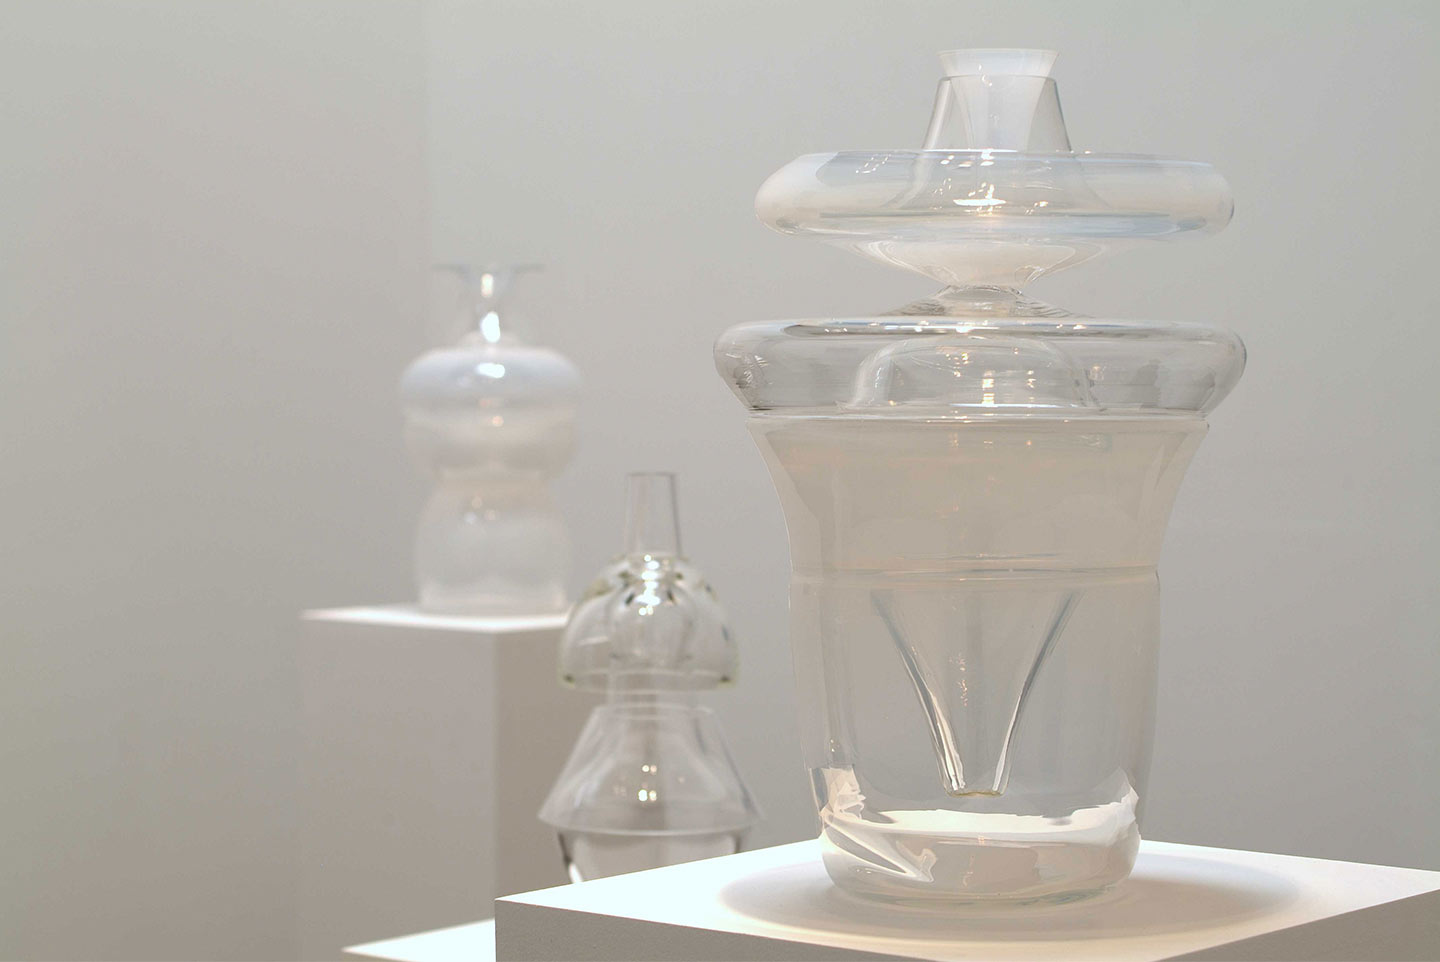 """Installation view, """"Out of the Blue,"""" solo exhibition at Shoshana Wayne Gallery, CA, 2004."""